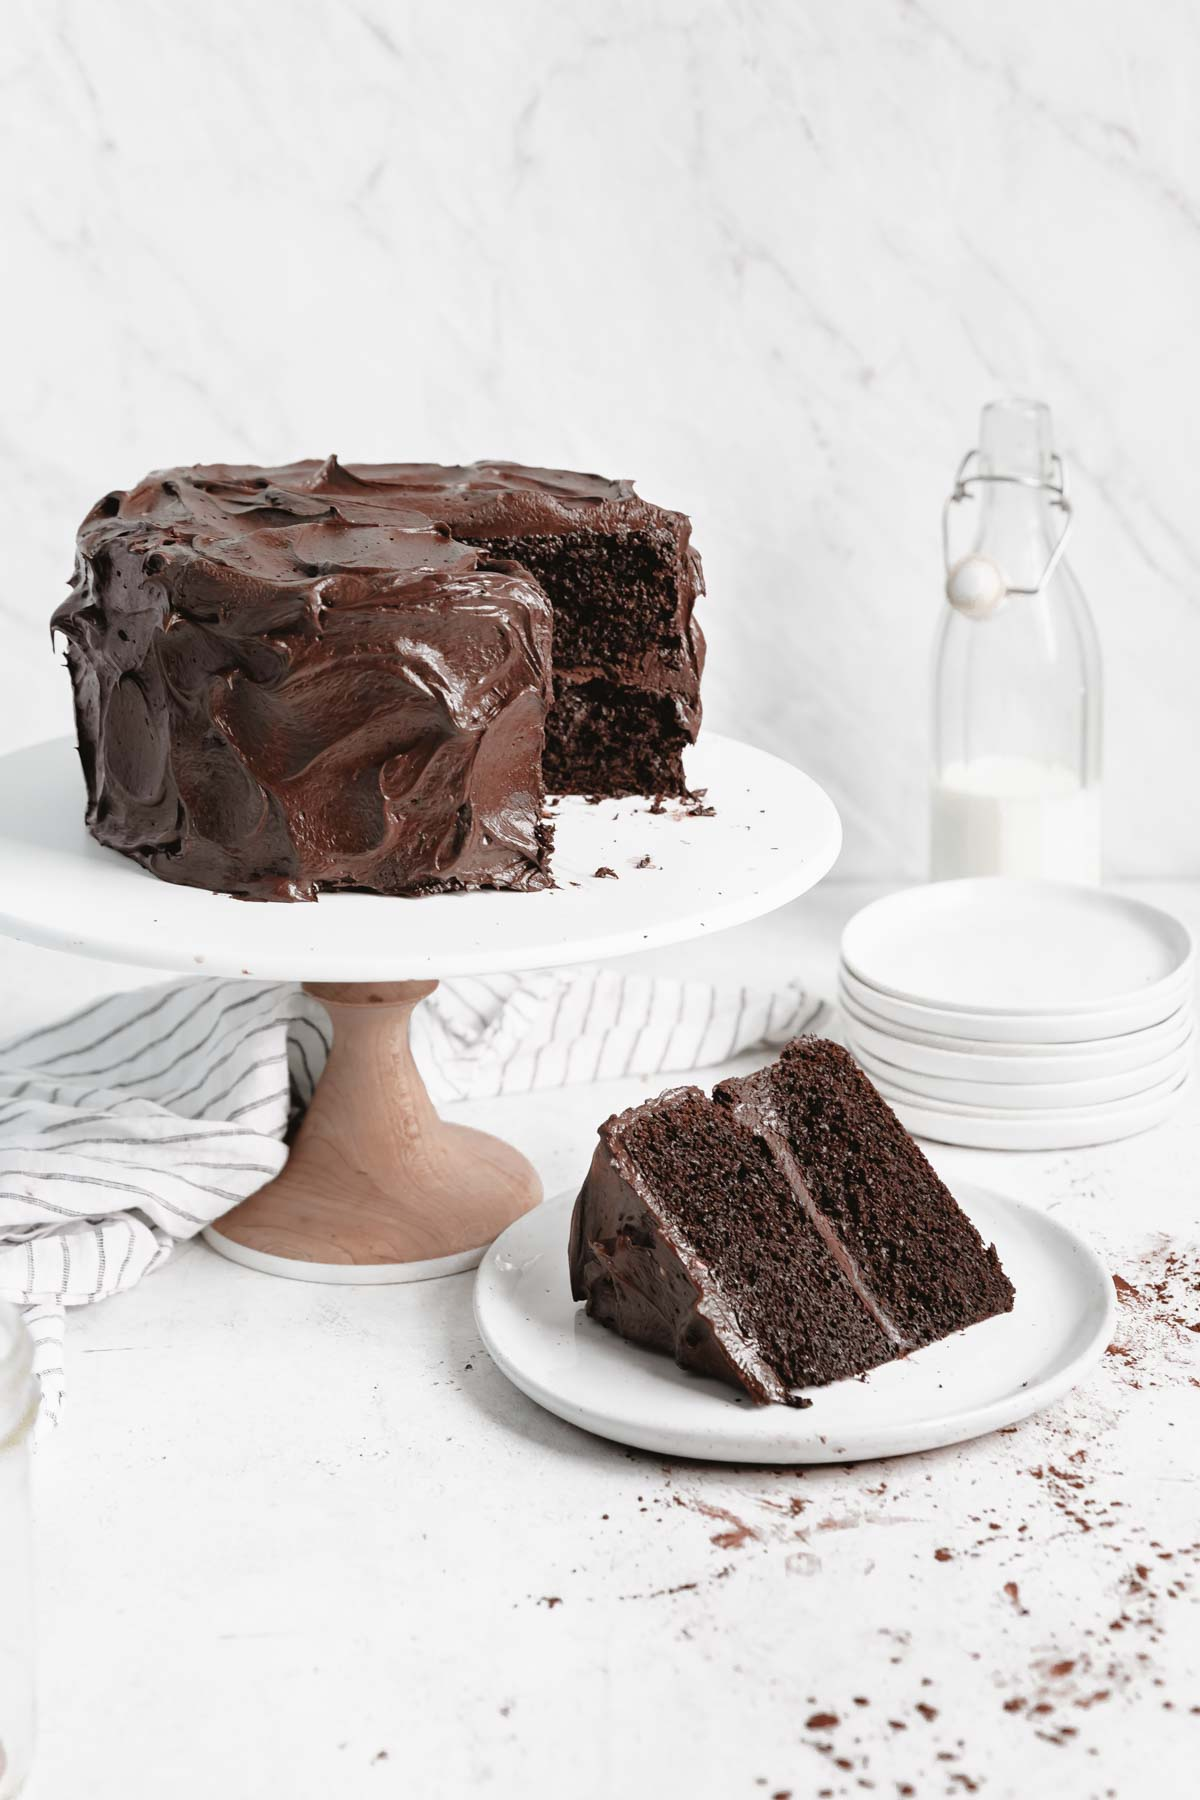 chocolate cake on a cake stand with a slice taken out